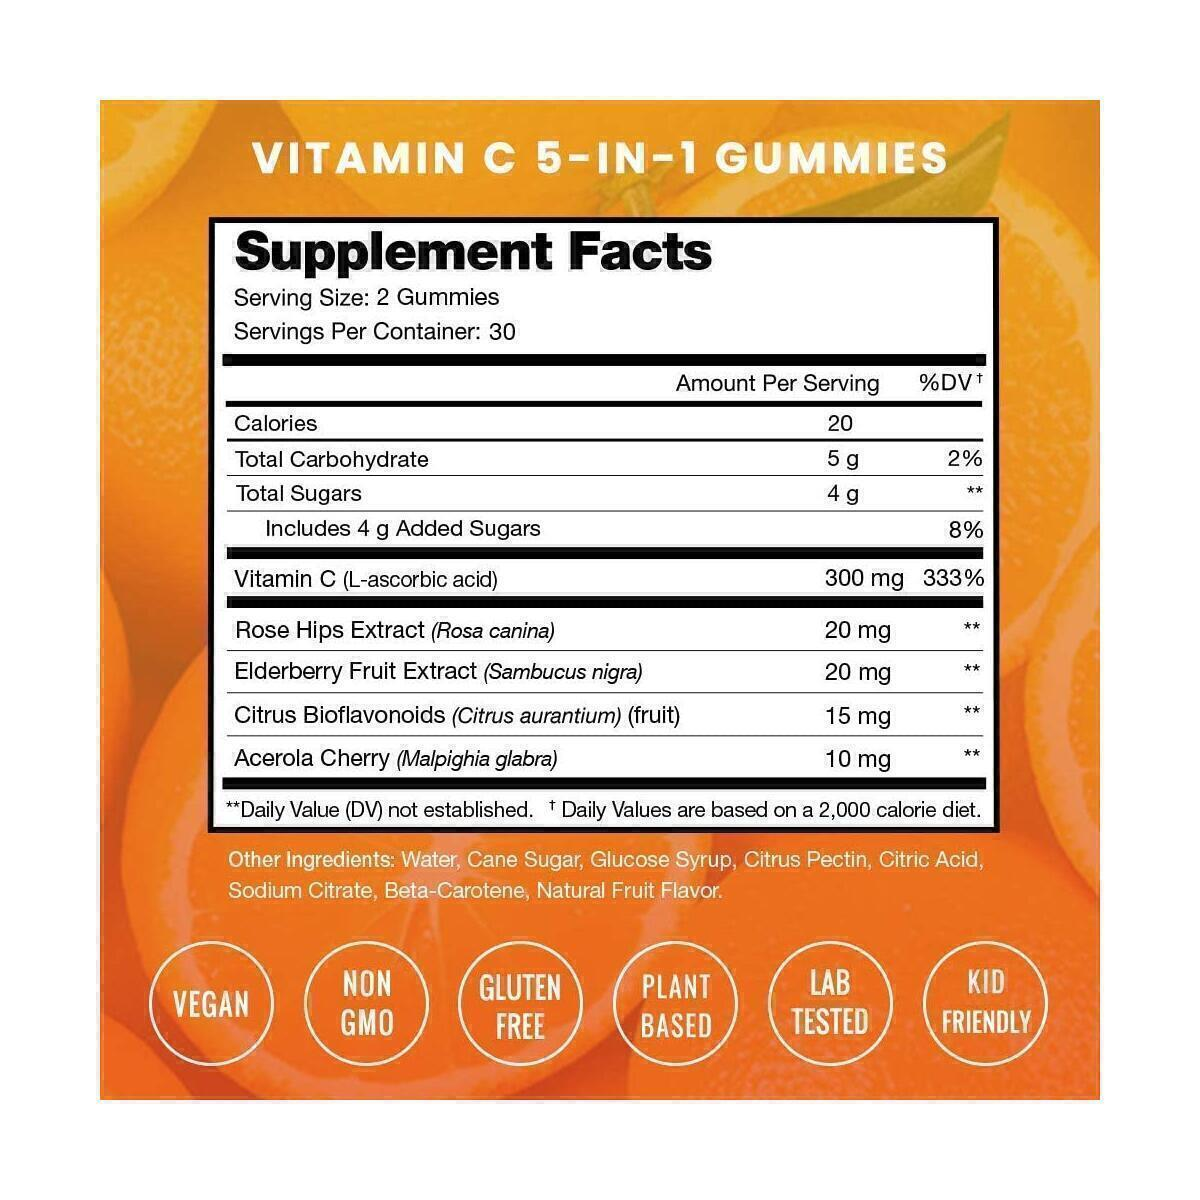 Vitamin C Gummies for Kids & Adults - Immune System Support Vit C Chewable Gummy - Immunity Booster Supplement with Elderberry, Rosehips, Citrus Bioflavonoids & Acerola Cherry - Natural, Vegan Non-GMO